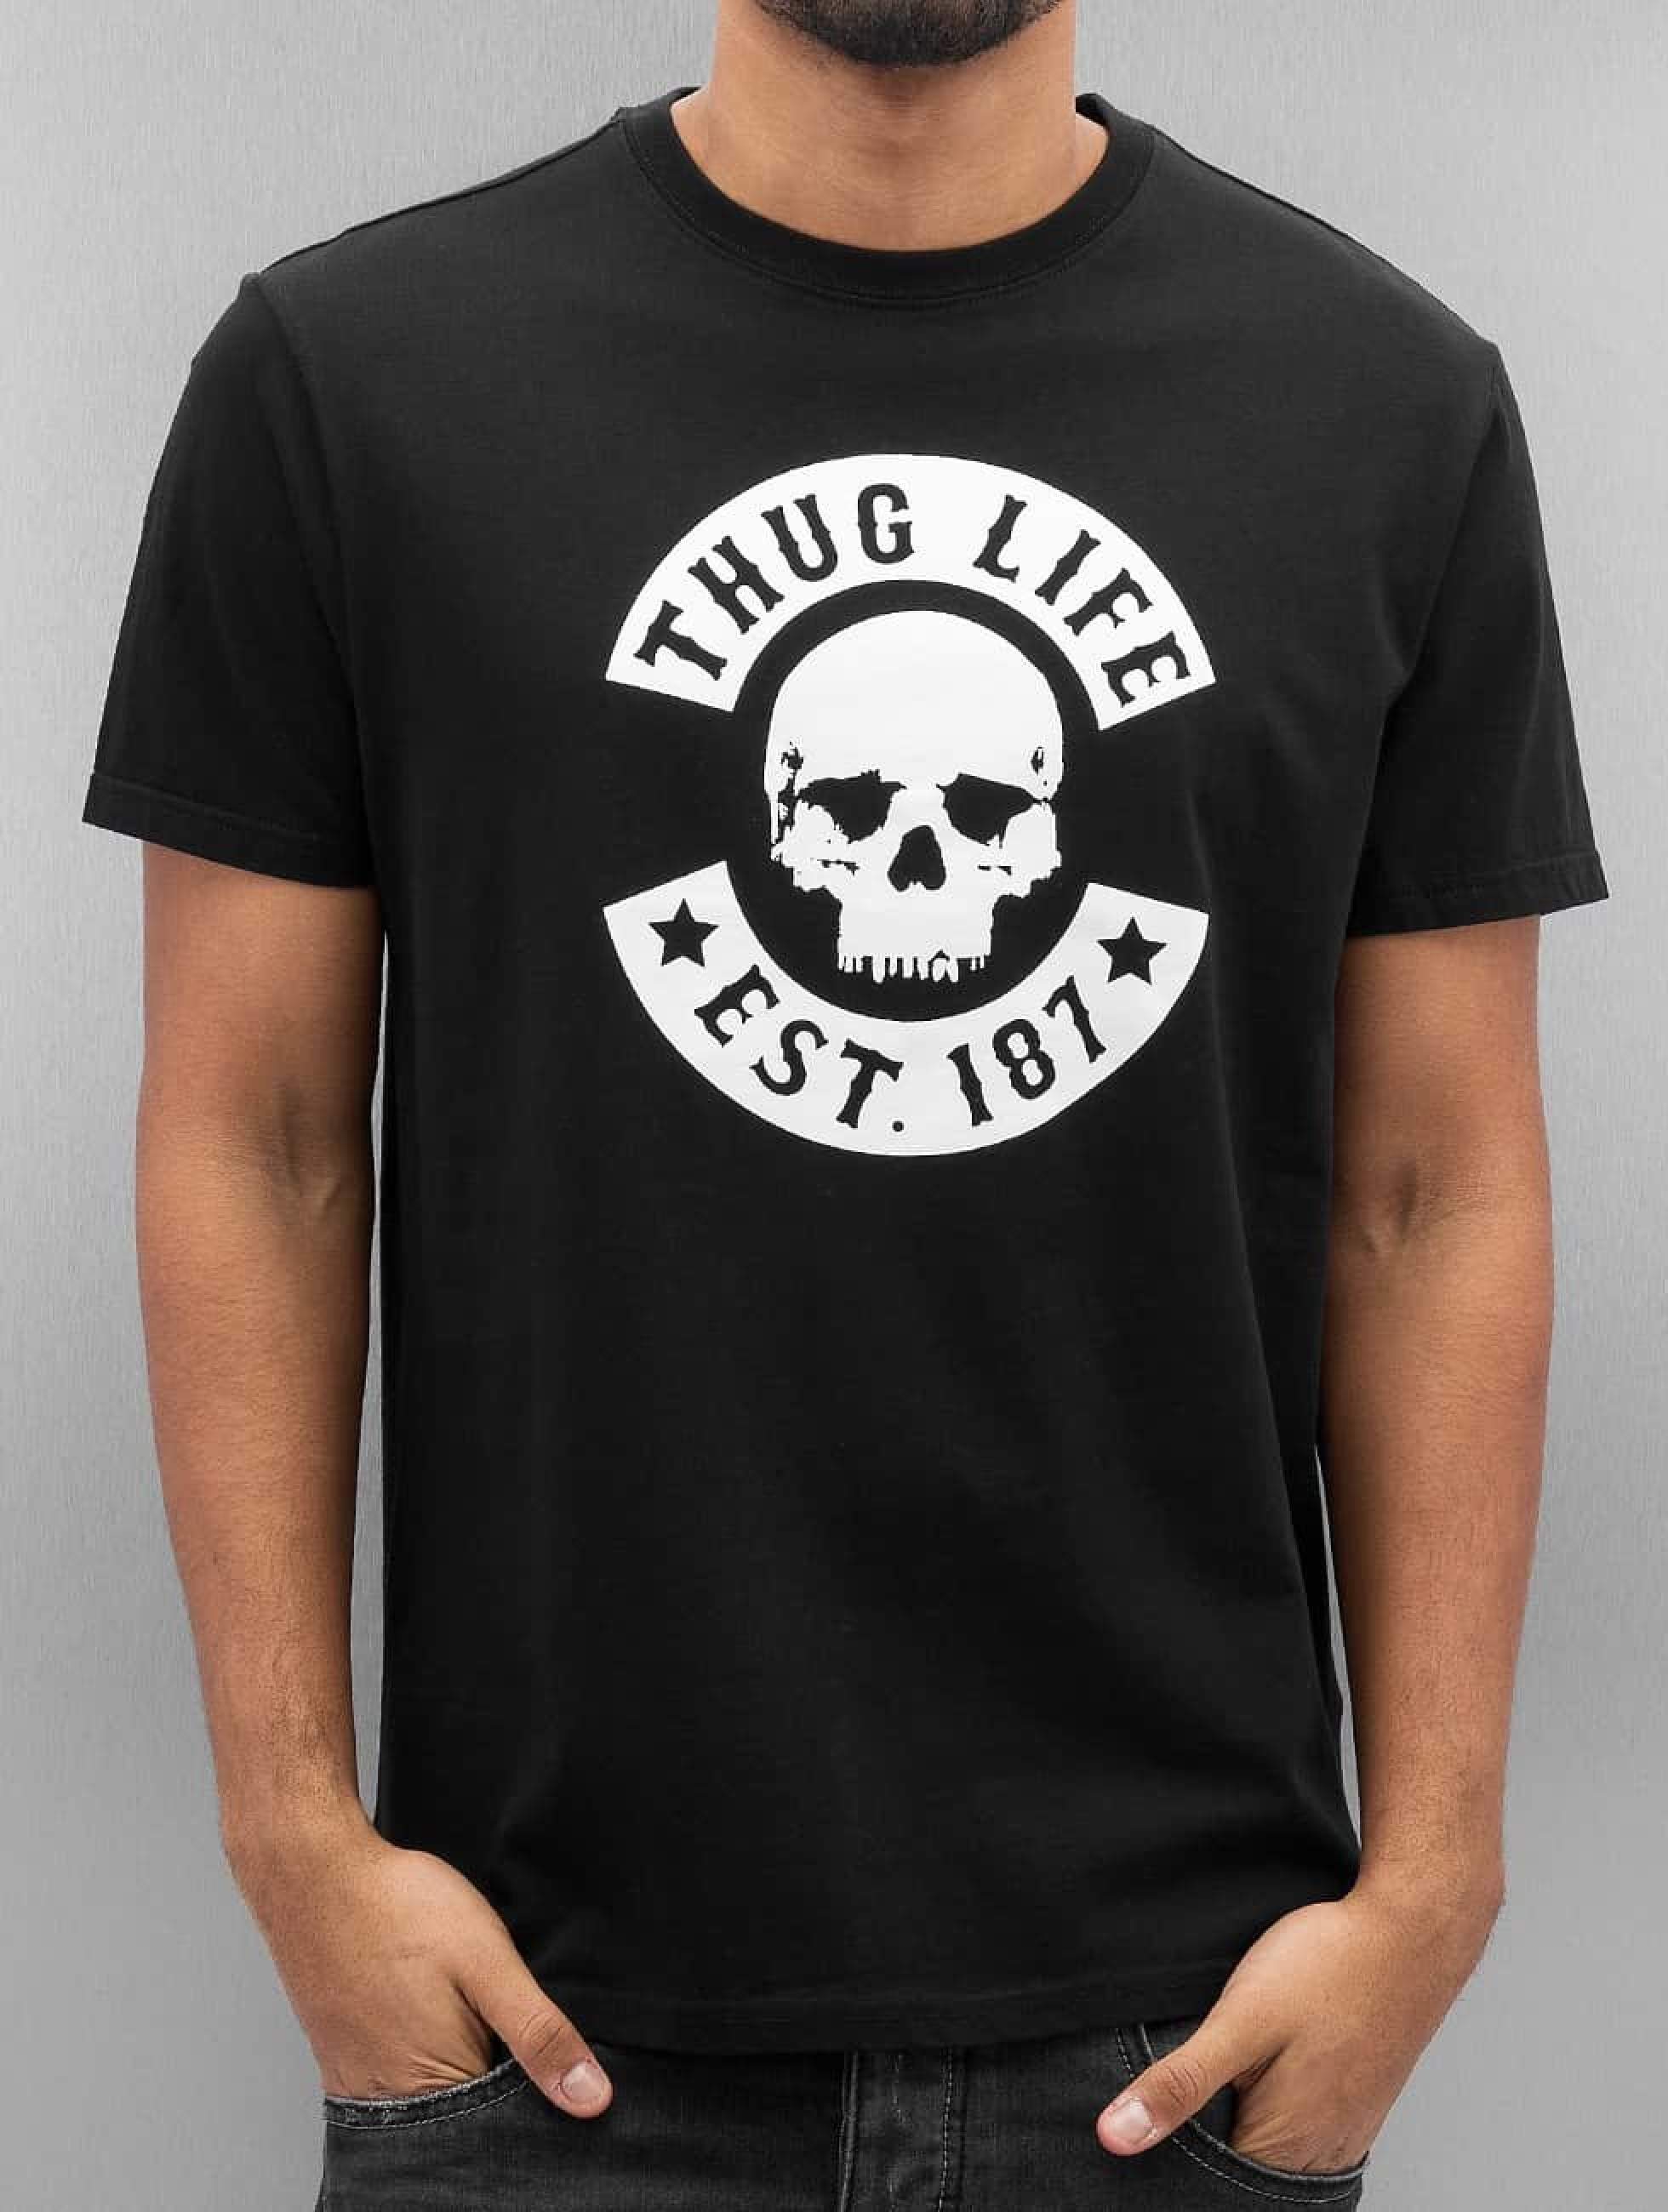 Thug Life / T-Shirt Zoro in black M